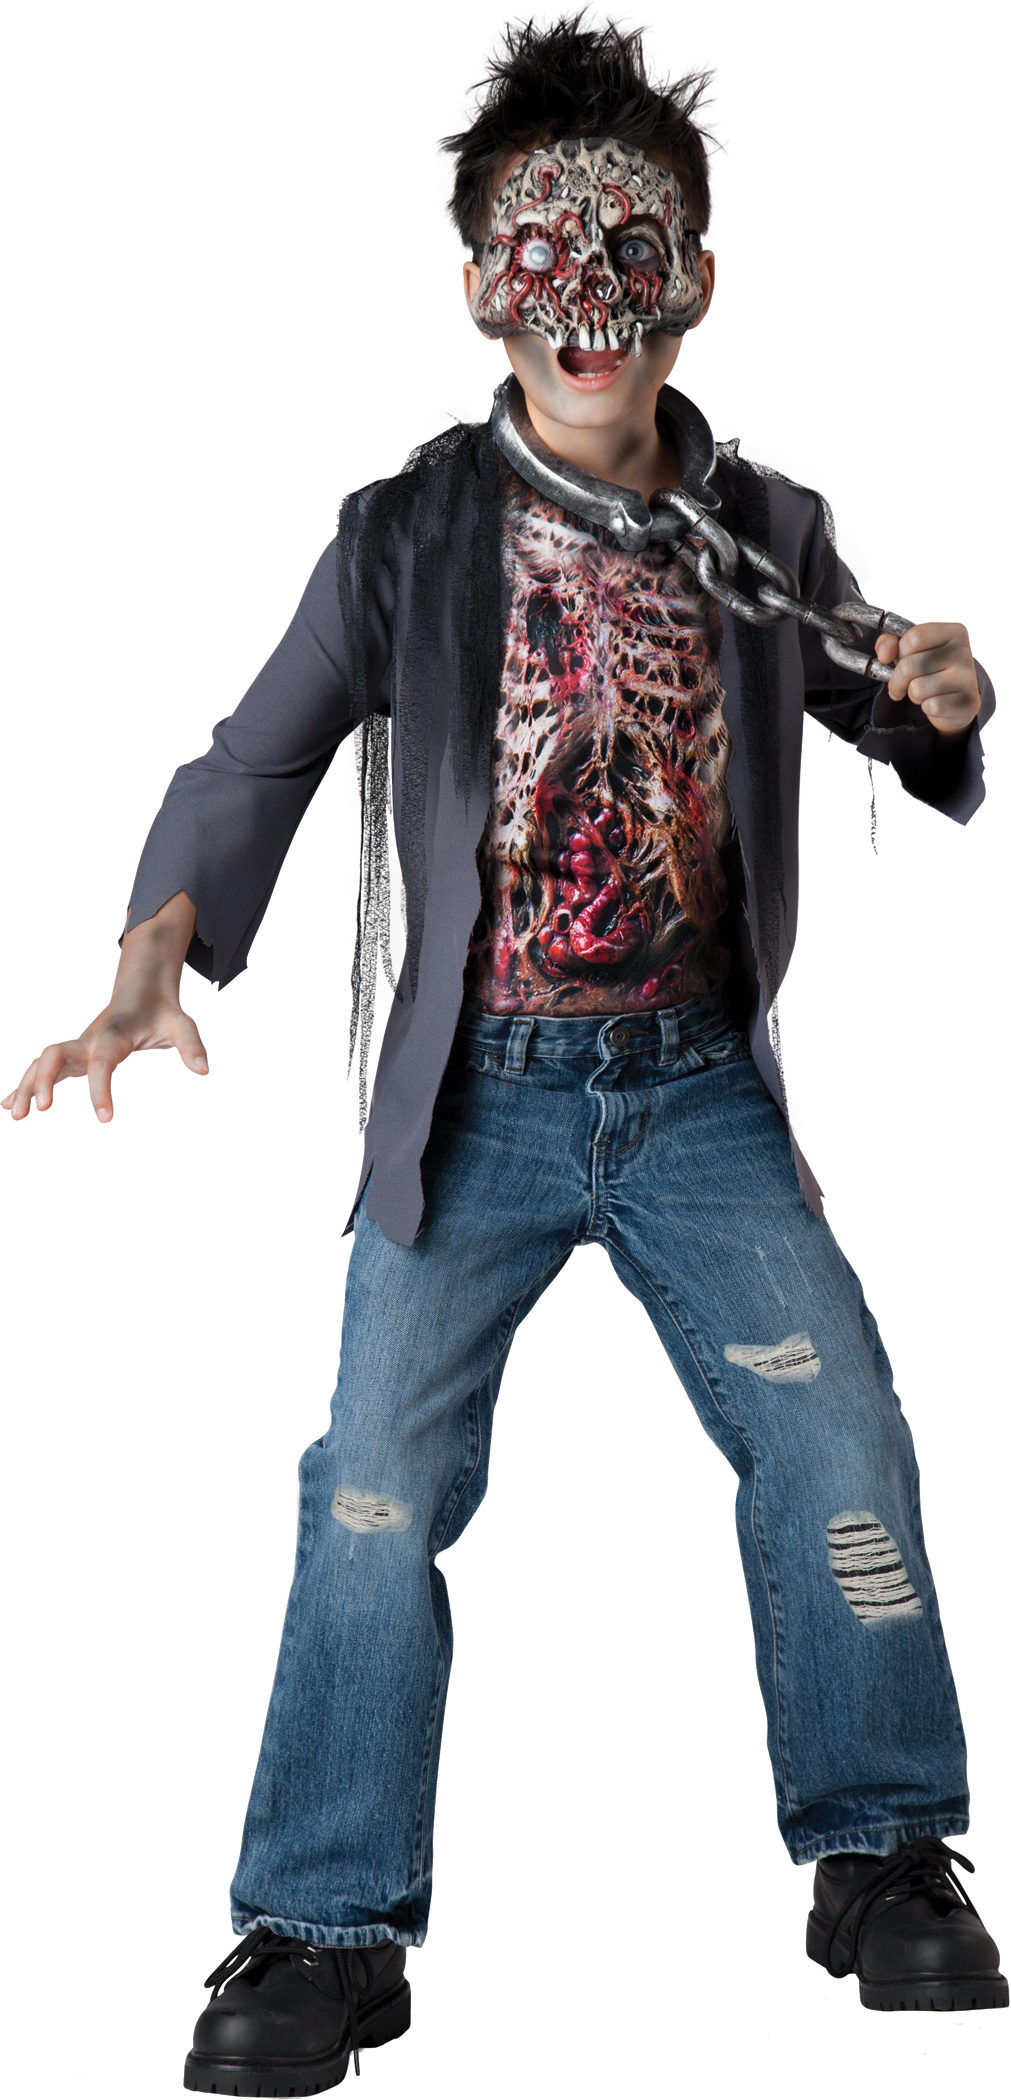 Unchained Horror Scary Kids Costume